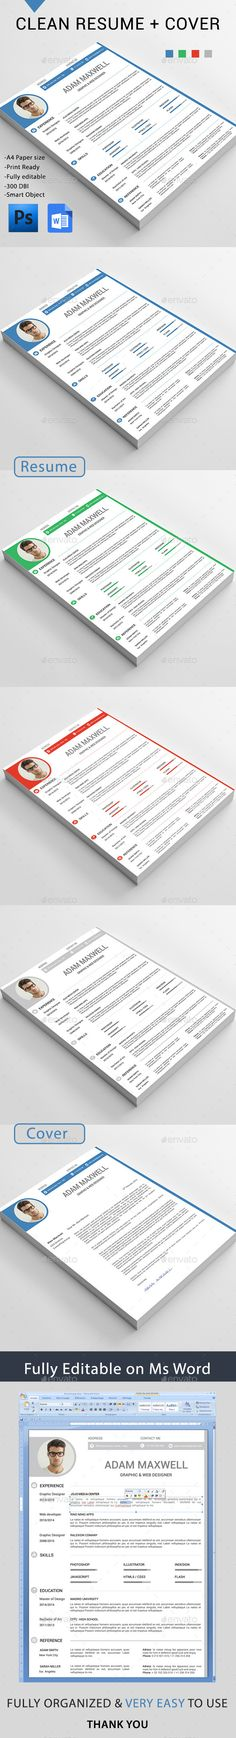 What Is the Best Resume Font, Size and Format? INFOGRAPHIC - font size for resume